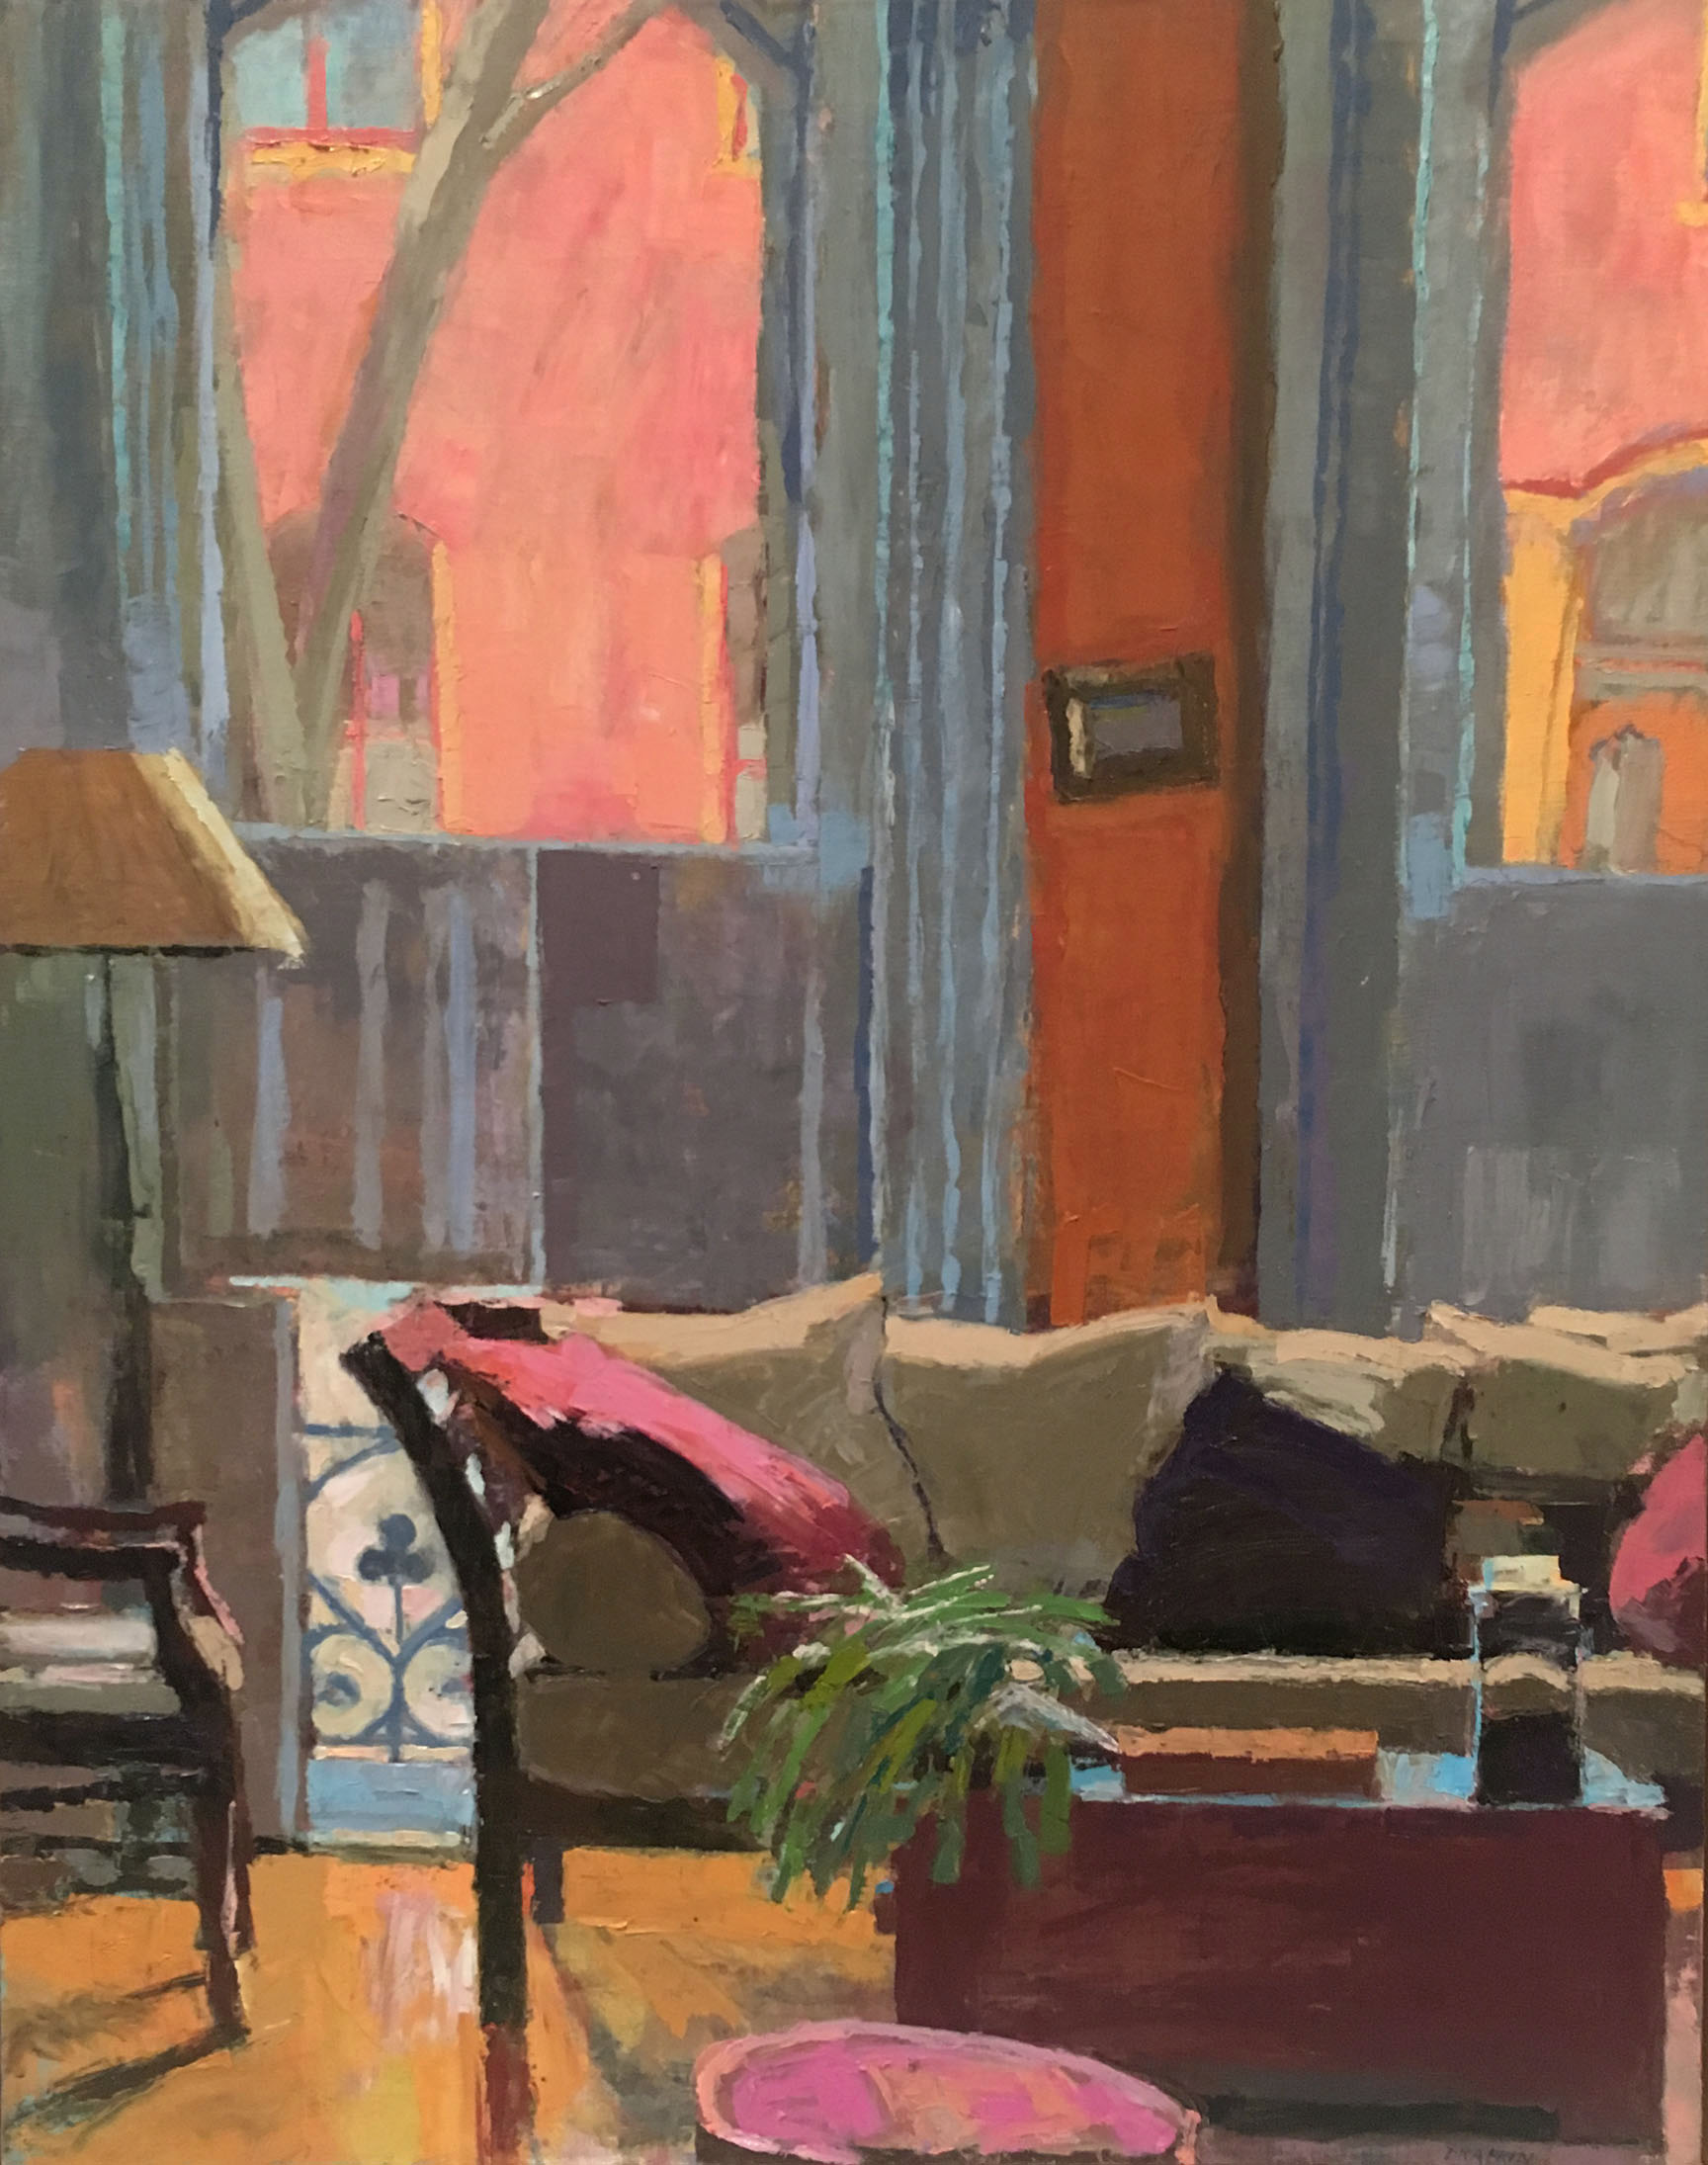 Oil painting of a living room with a couch and two large windows.